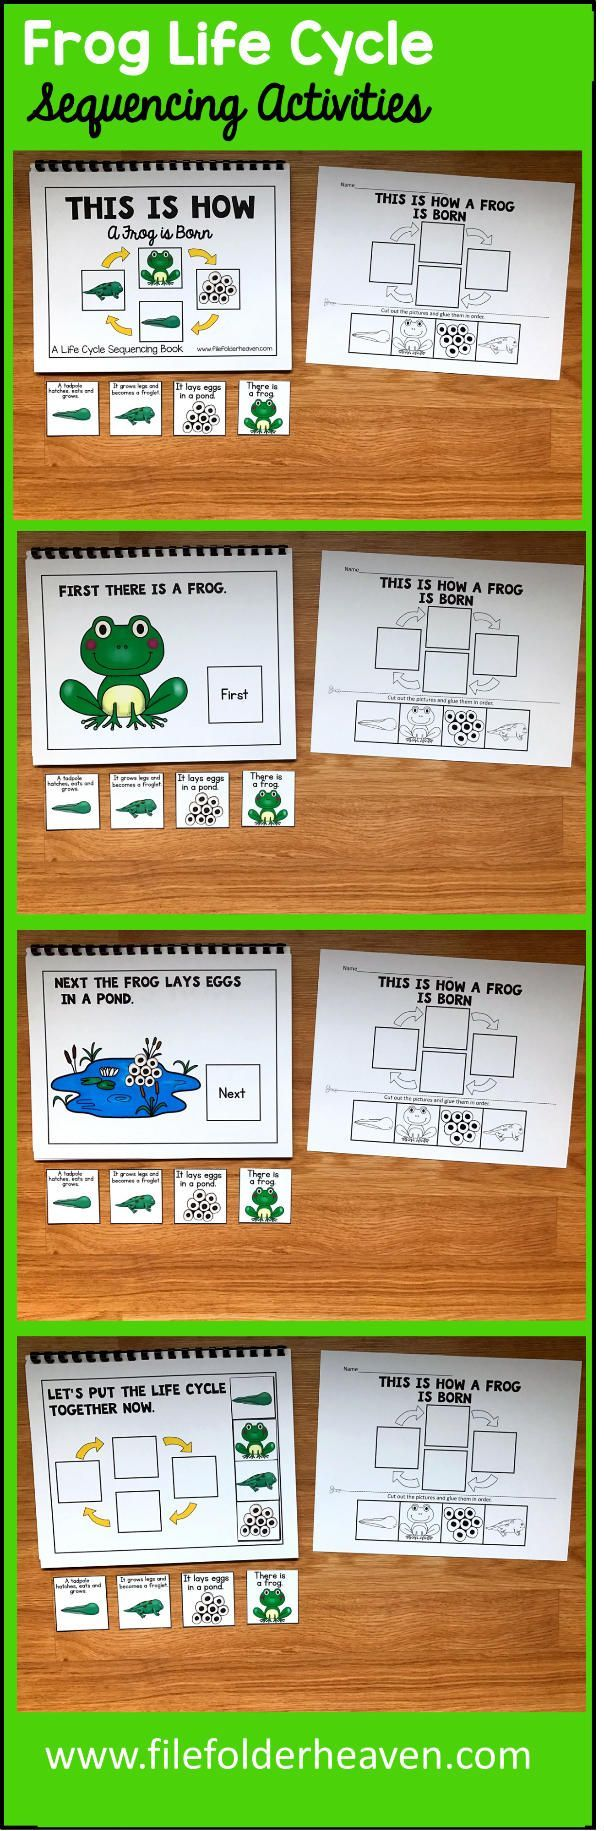 These Frog Life Cycle Sequencing Activities include 1 Adapted Book and 1 accompanying worksheet. The Frog Life Cycle Adapted Book teaches a simple 4 step life cycle for the frog, includes hands-on interaction with the text, and reinforces sequencing skills.  Adapted Book Included:    This Is How a Frog is Born  The teacher or therapist reads book as students follow along, matching each step of the life cycle on each page